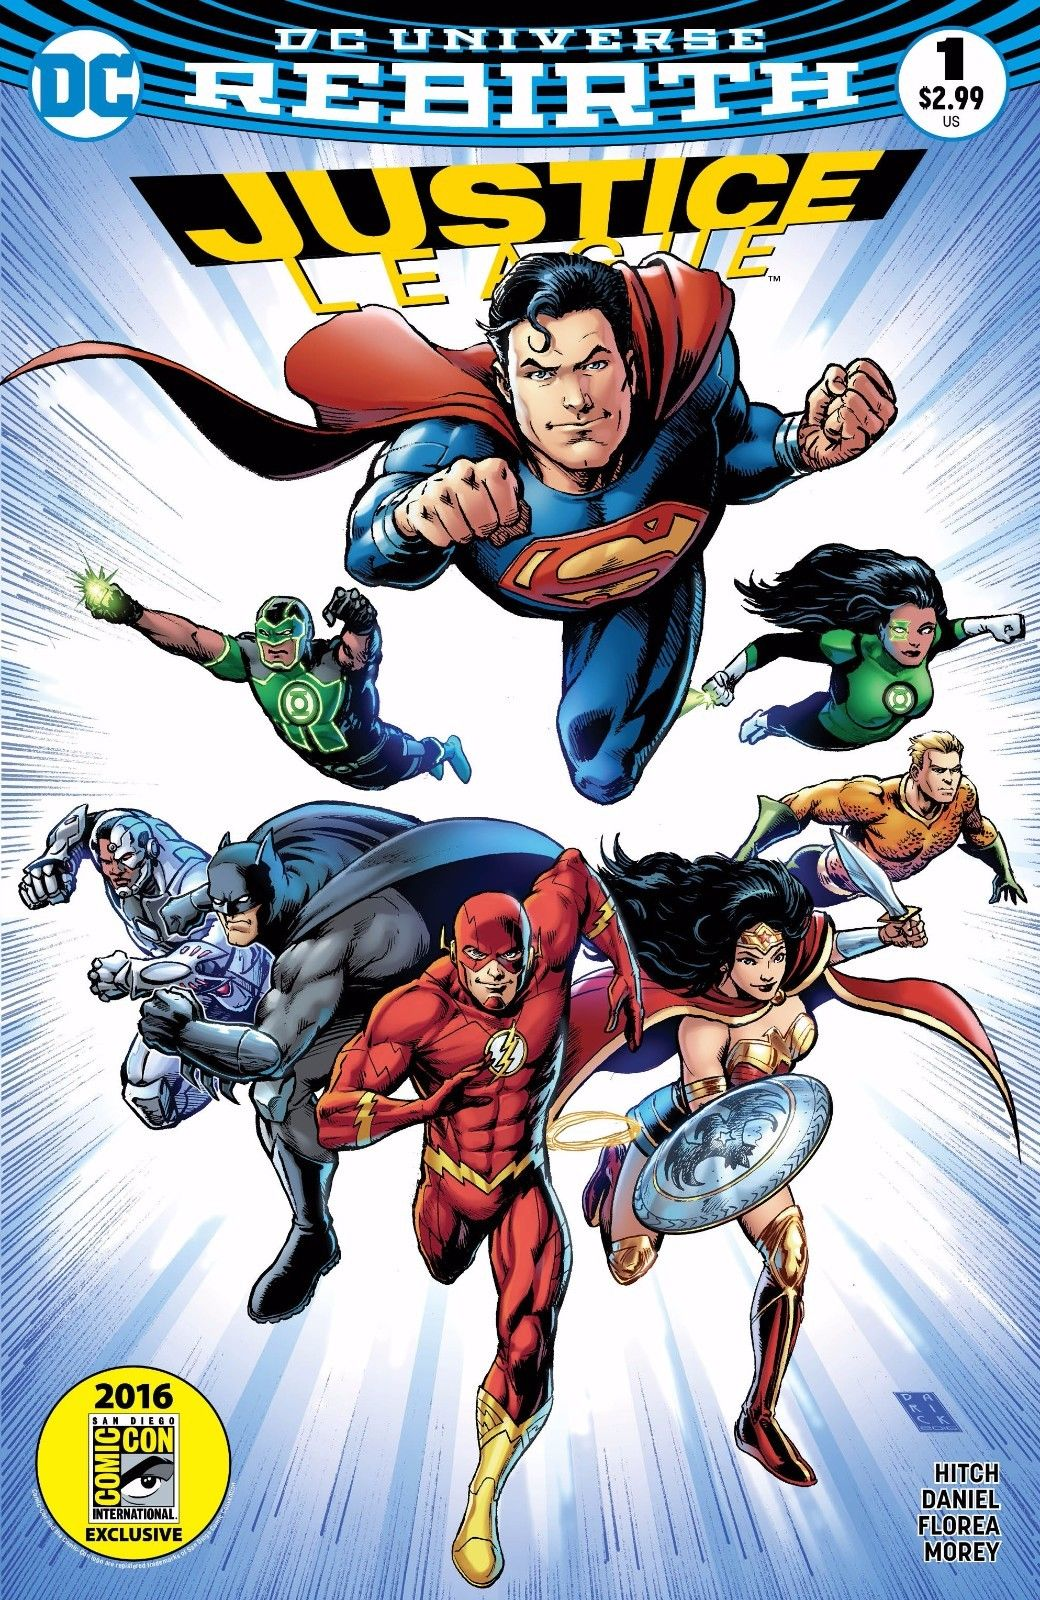 justice league 1 comic book speculation and investing